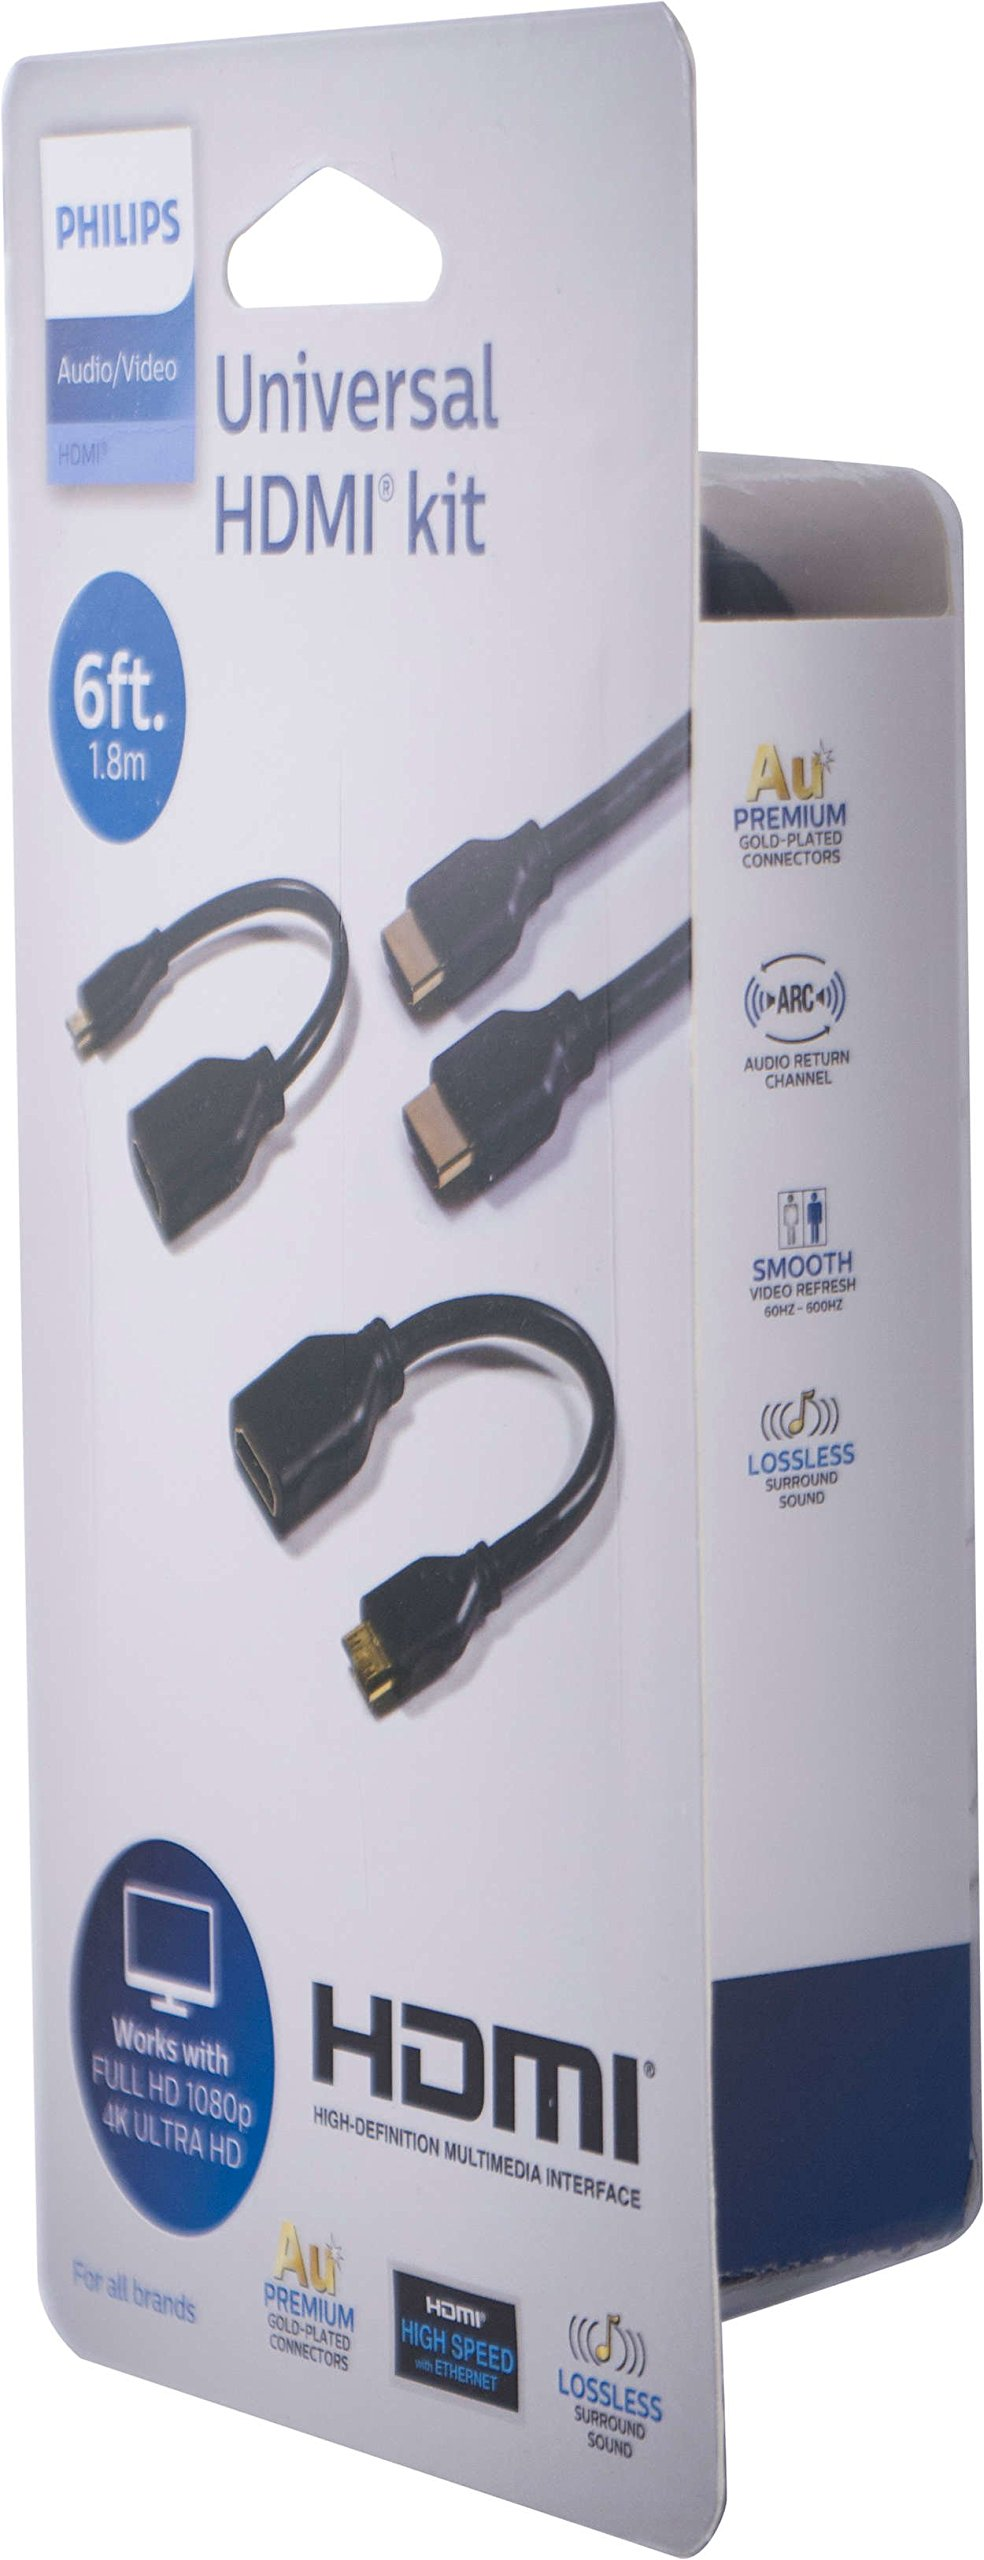 Philips Universal HDMI Kit, Full HD 1080p and 4K Ultra HD Compatibility, HDMI-to-mini HDMI adapter, HDMI-to-micro HDMI Adapter, by Philips (Image #2)